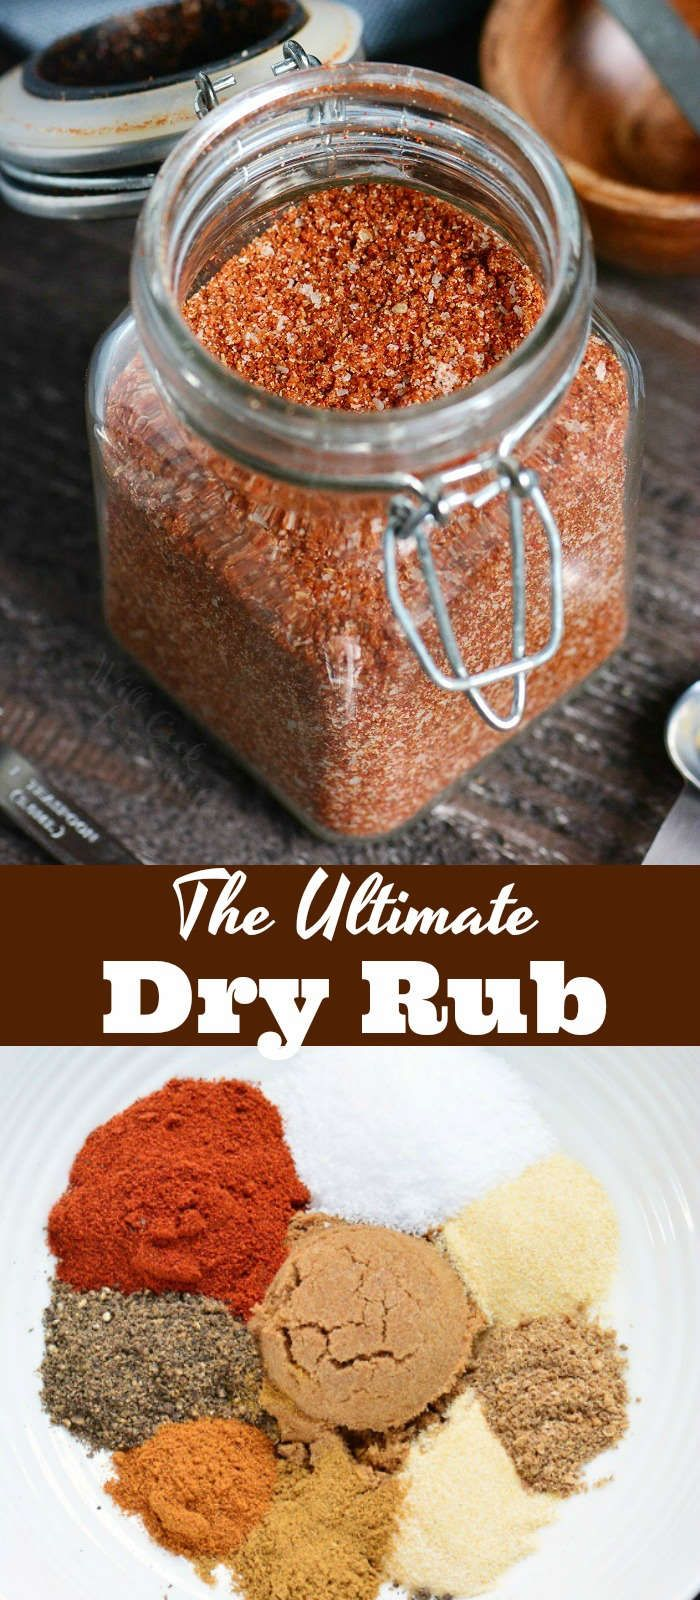 The Ultimate Dry Rub